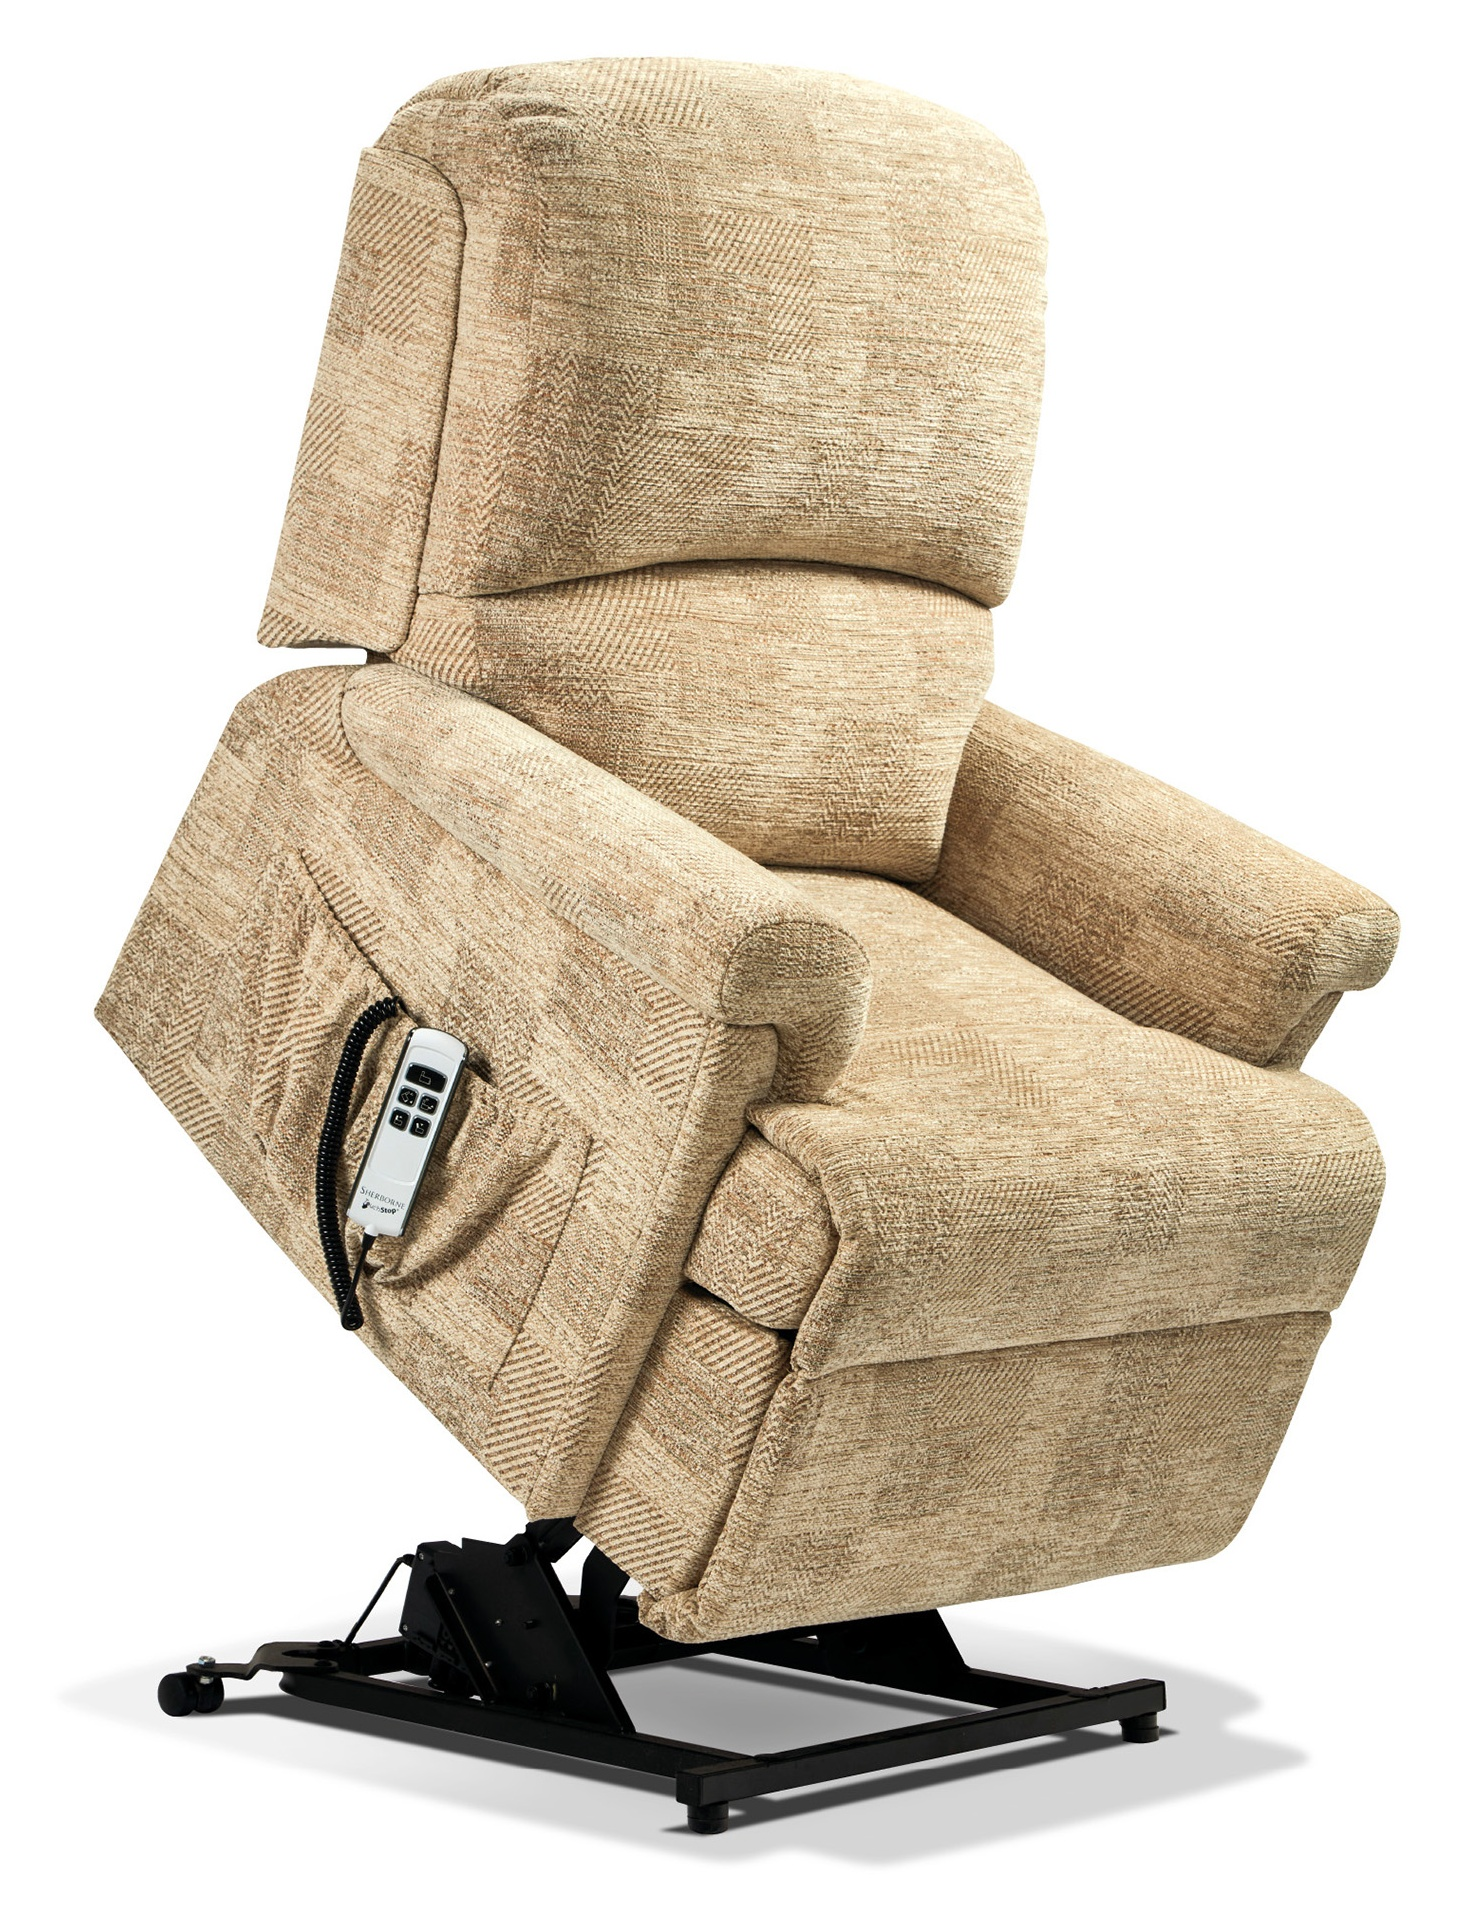 Groovy Sherborne Nevada Dual Motor Riser Recliner Ocoug Best Dining Table And Chair Ideas Images Ocougorg